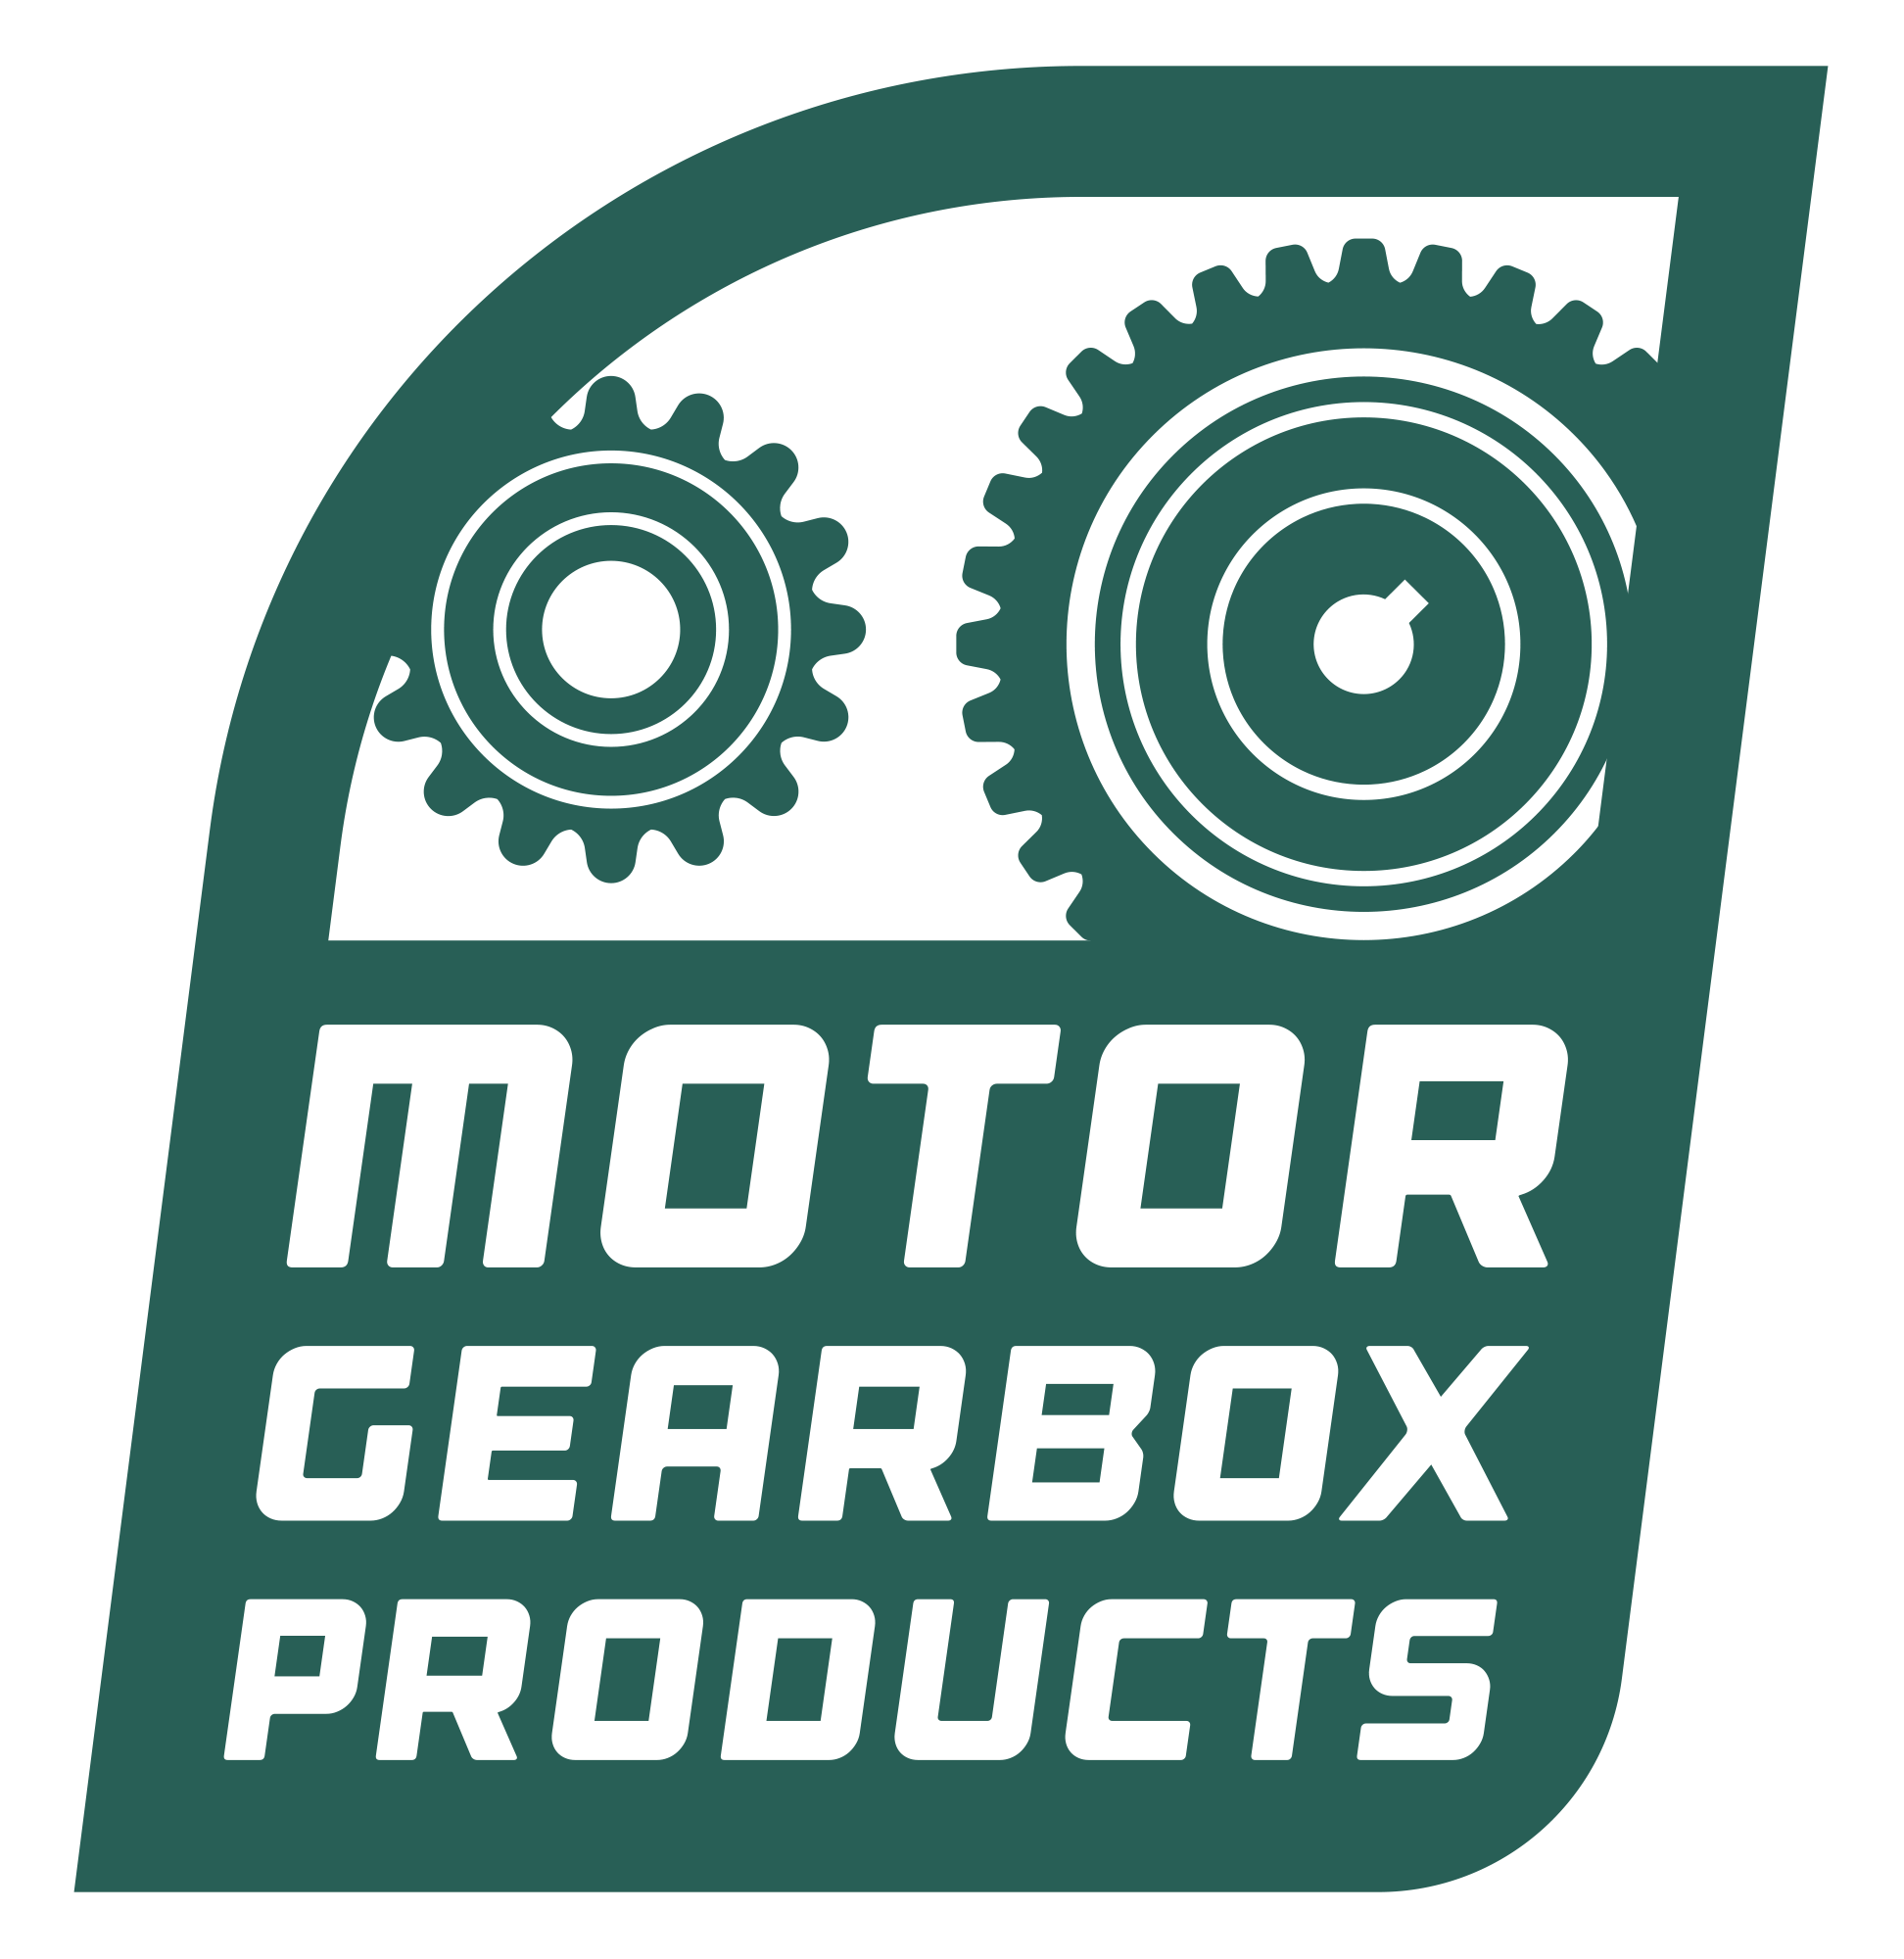 Motor Gearbox Products